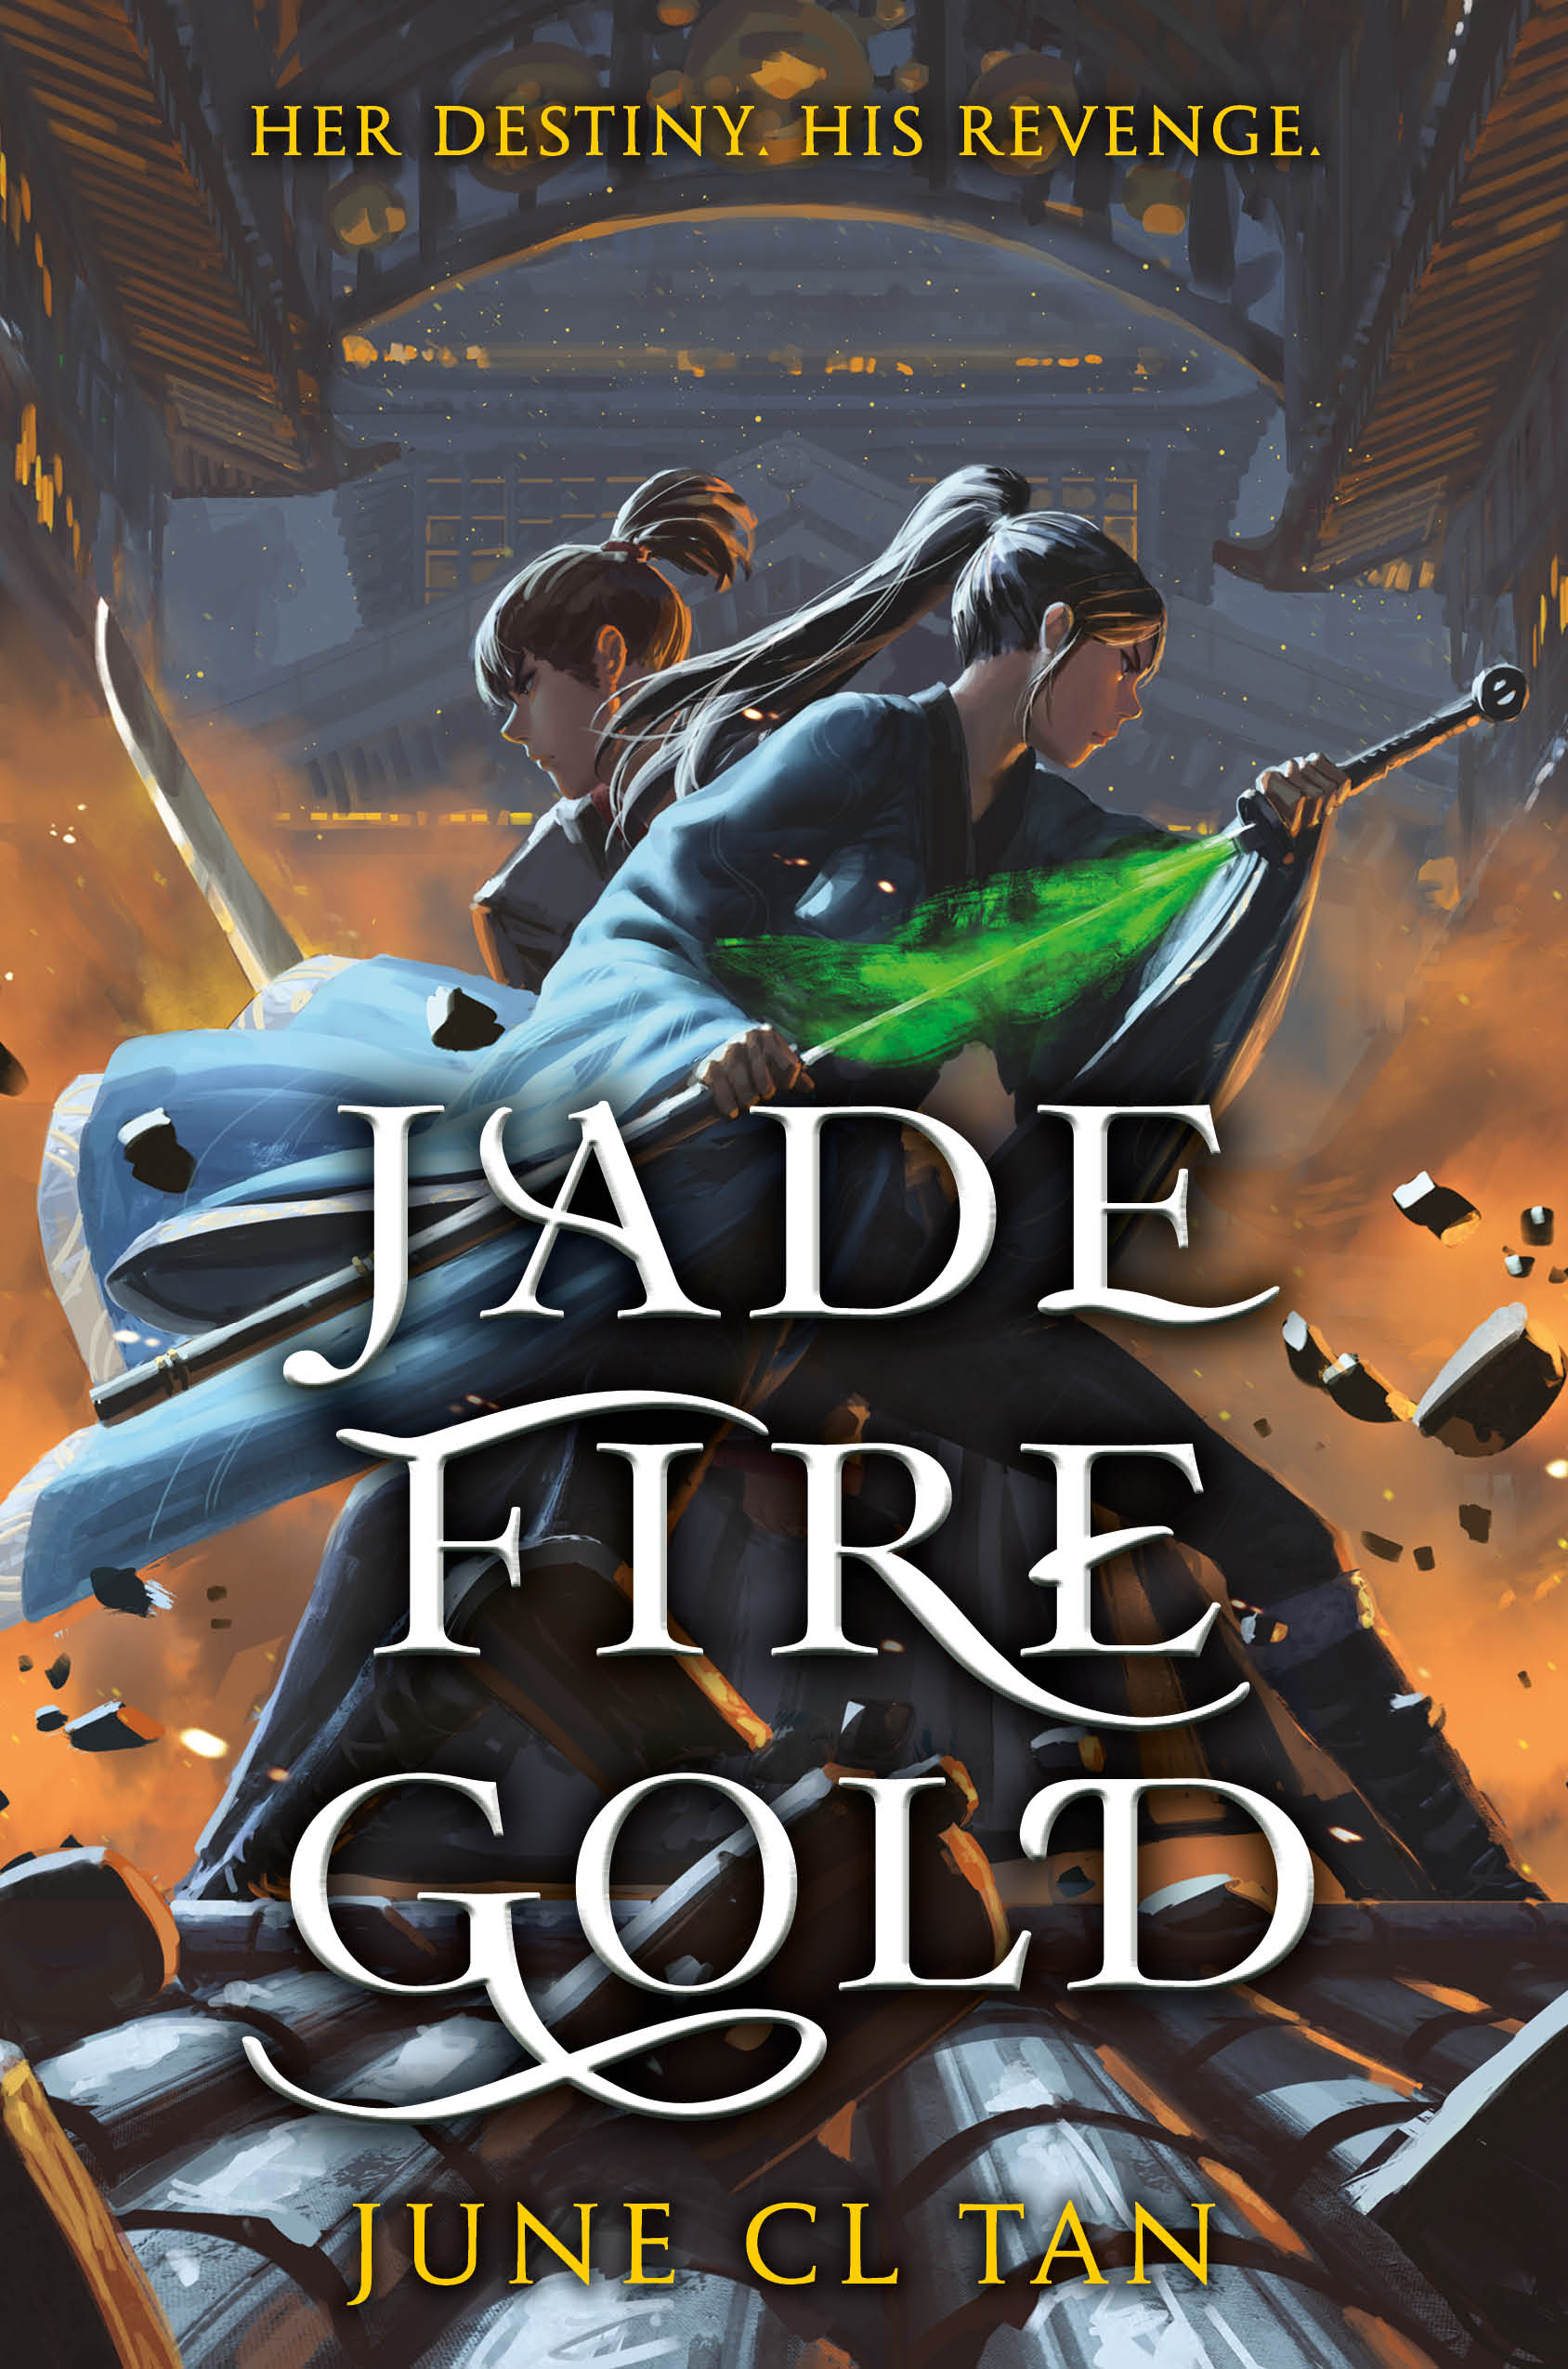 The book cover has two people turning quickly and pulling swords. One is glowing with a green light.